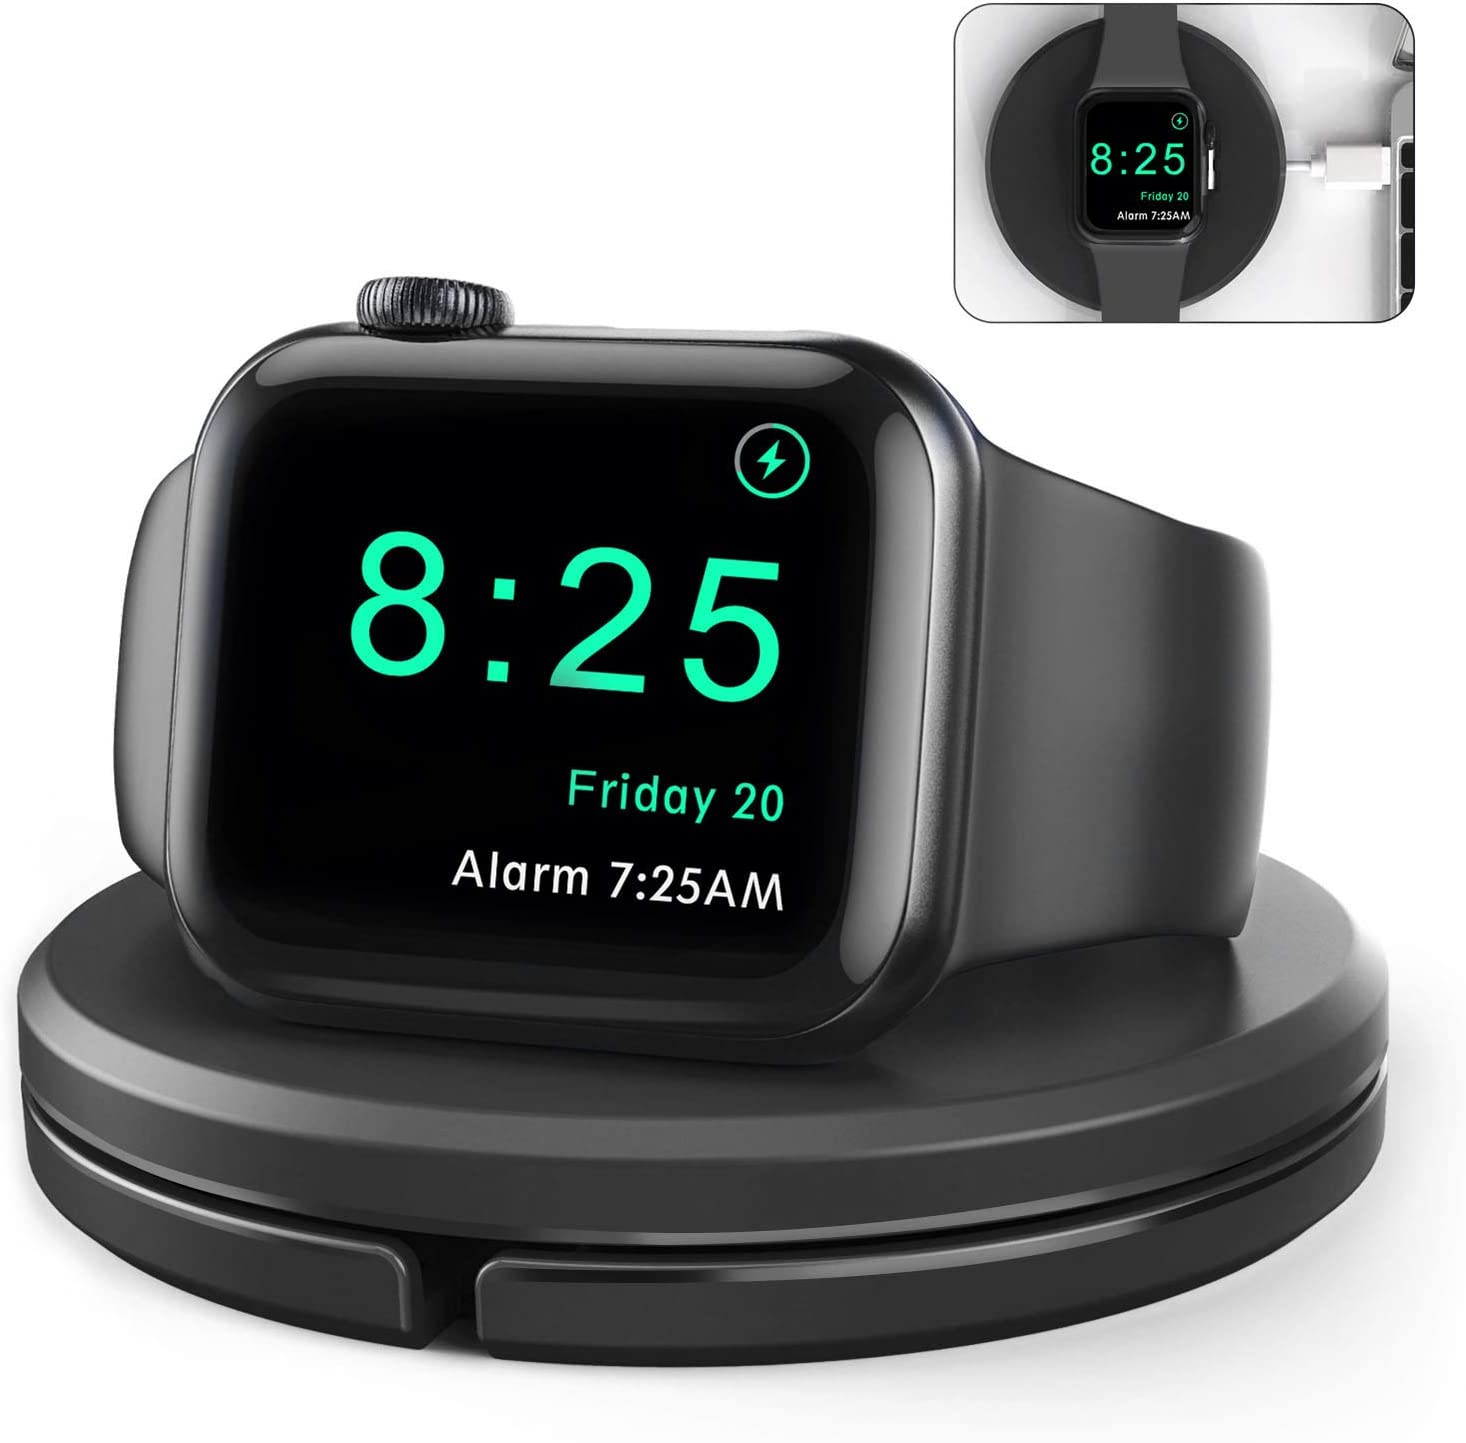 Charging Stand for Apple Watch [Charger Included],Portable Desk Watch Charger Stand with Charging Cable, Magnetic Wireless Charging Station Compatible with iWatch SE Series 6/5/4/3/2/1